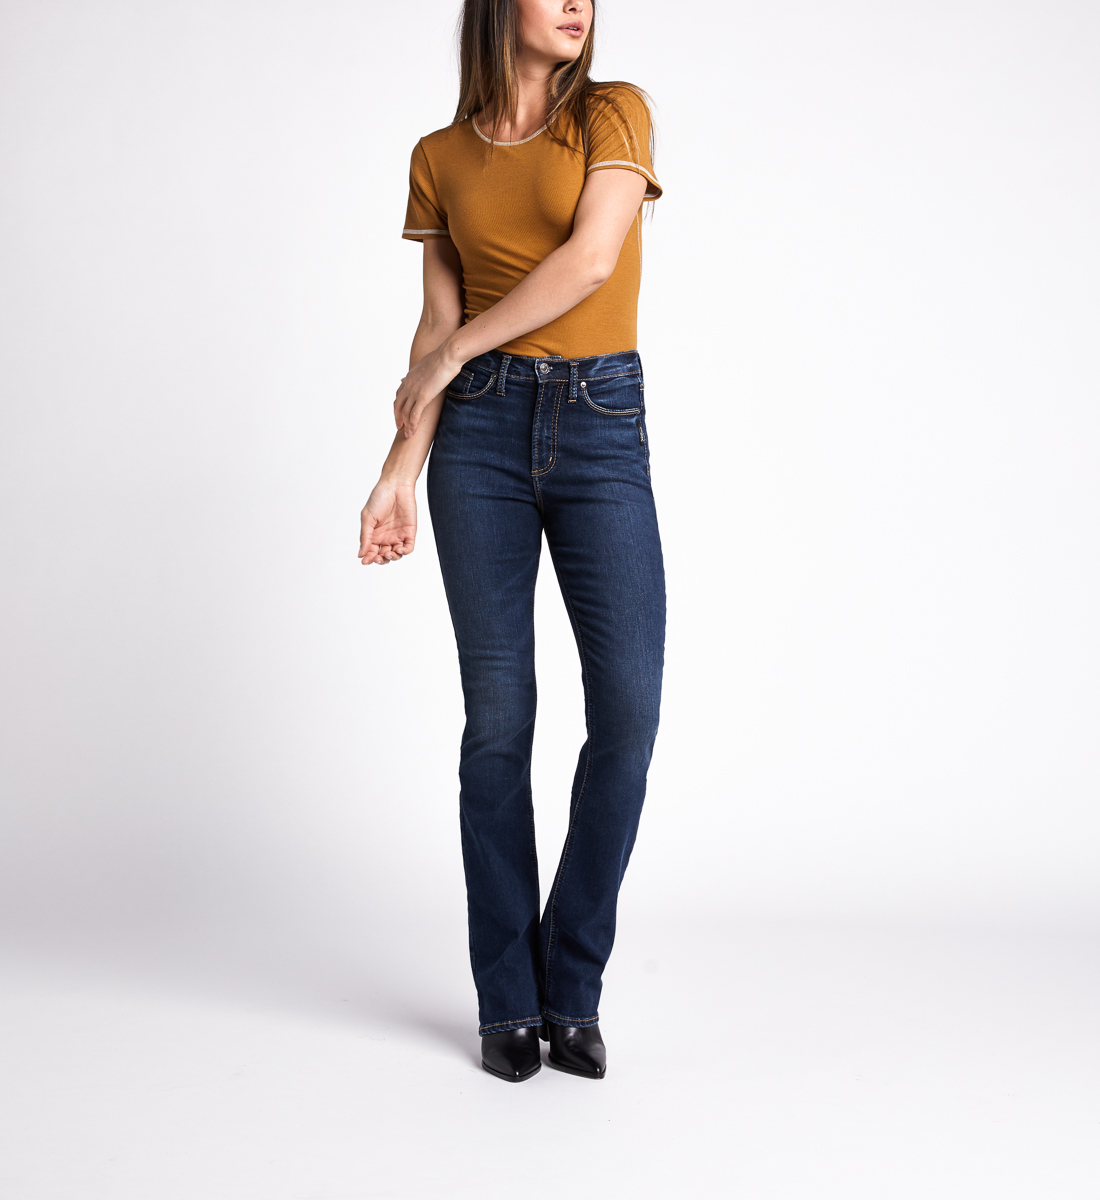 Silver Jeans Calley High Rise Slim Bootcut Jeans